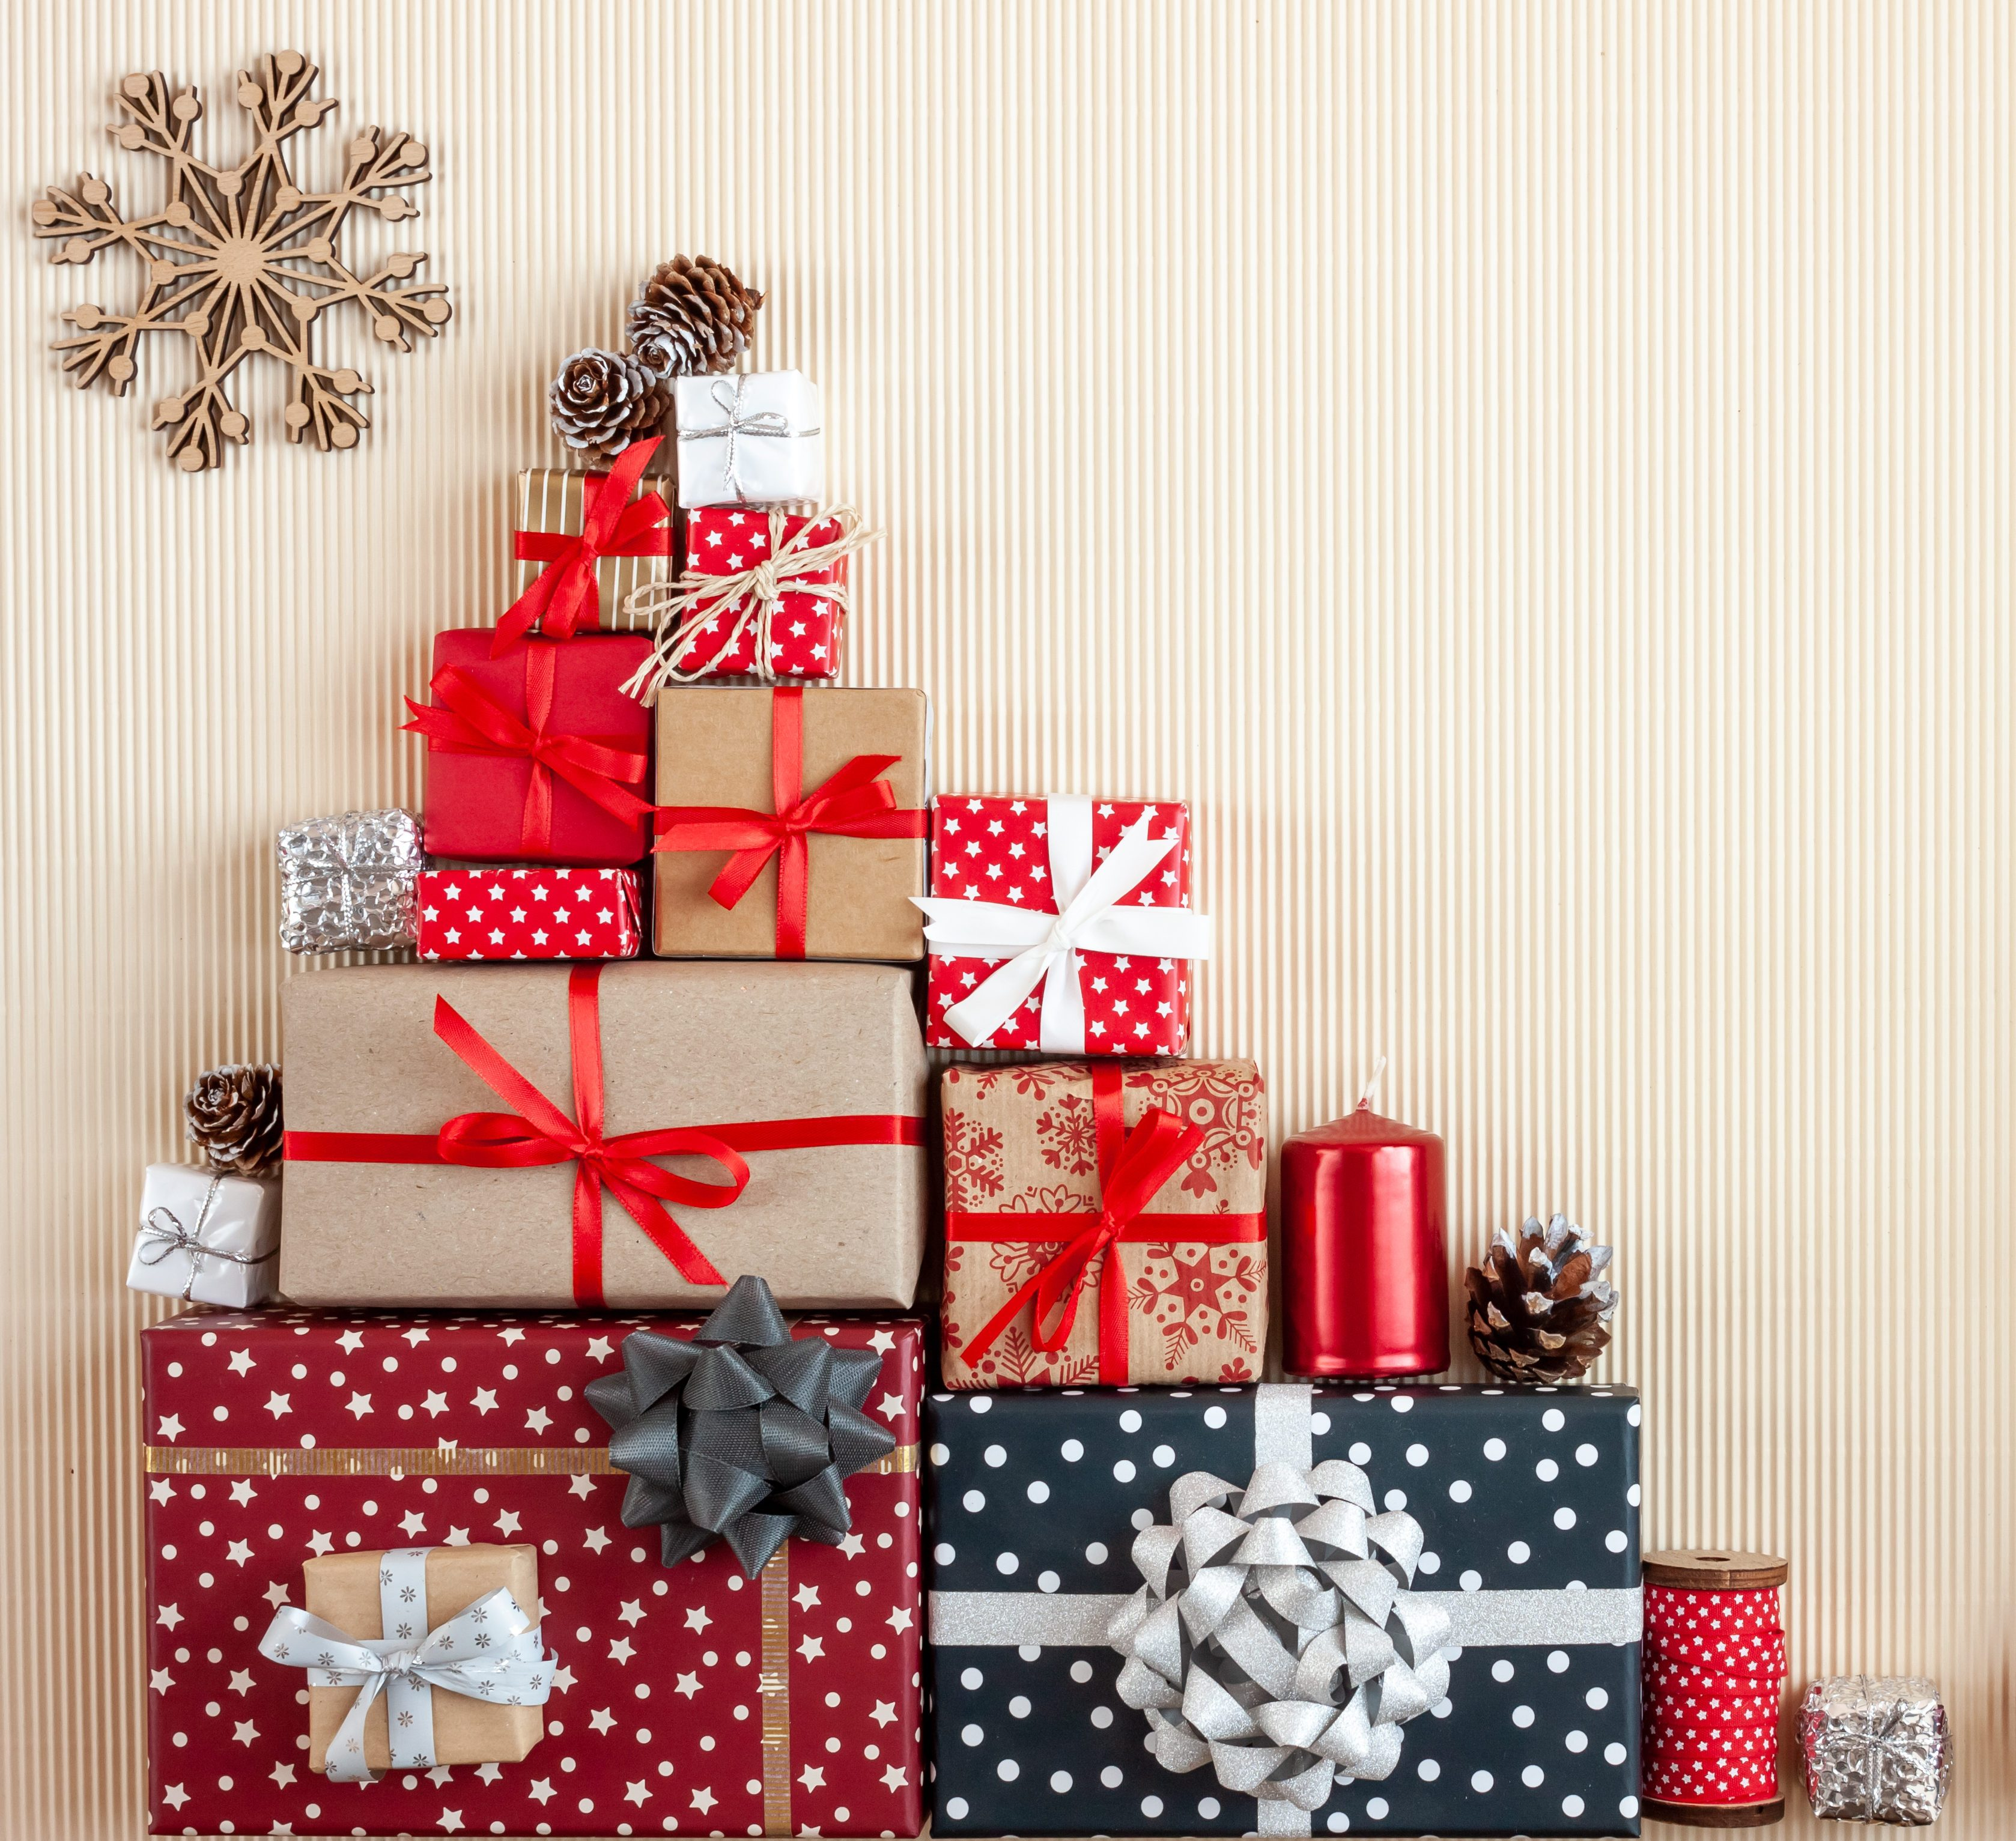 Best Christmas Gifts You Ll Want To Add To Your Wish List